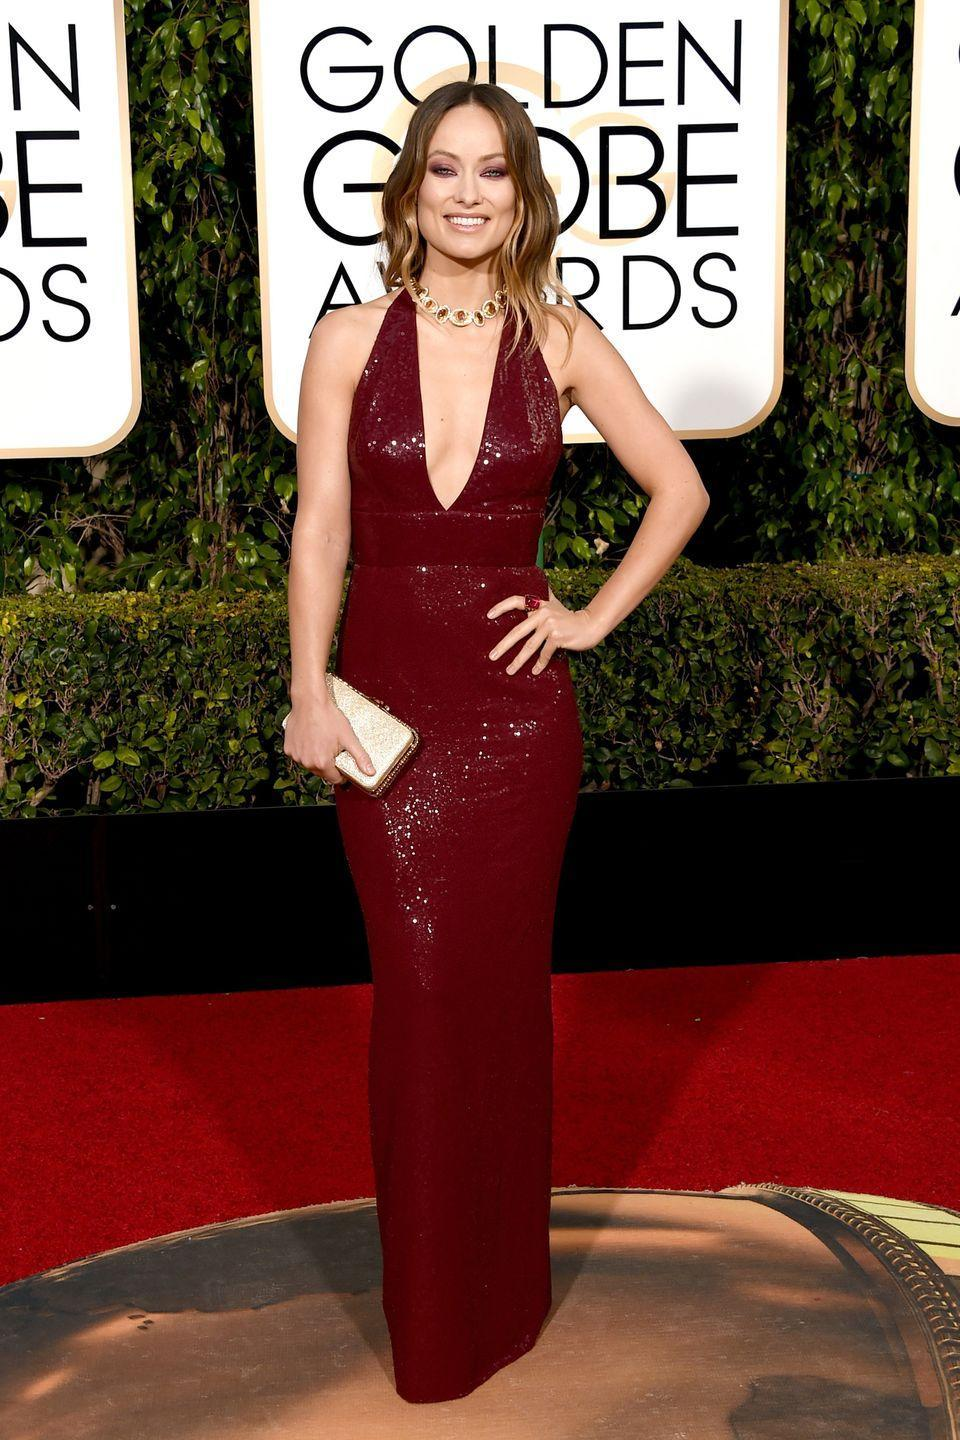 <p>Wilde always eschews typical red carpet trends, and makes a statement of her own, as she did in this oxblood sequin Michael Kors gown in 2016. </p>